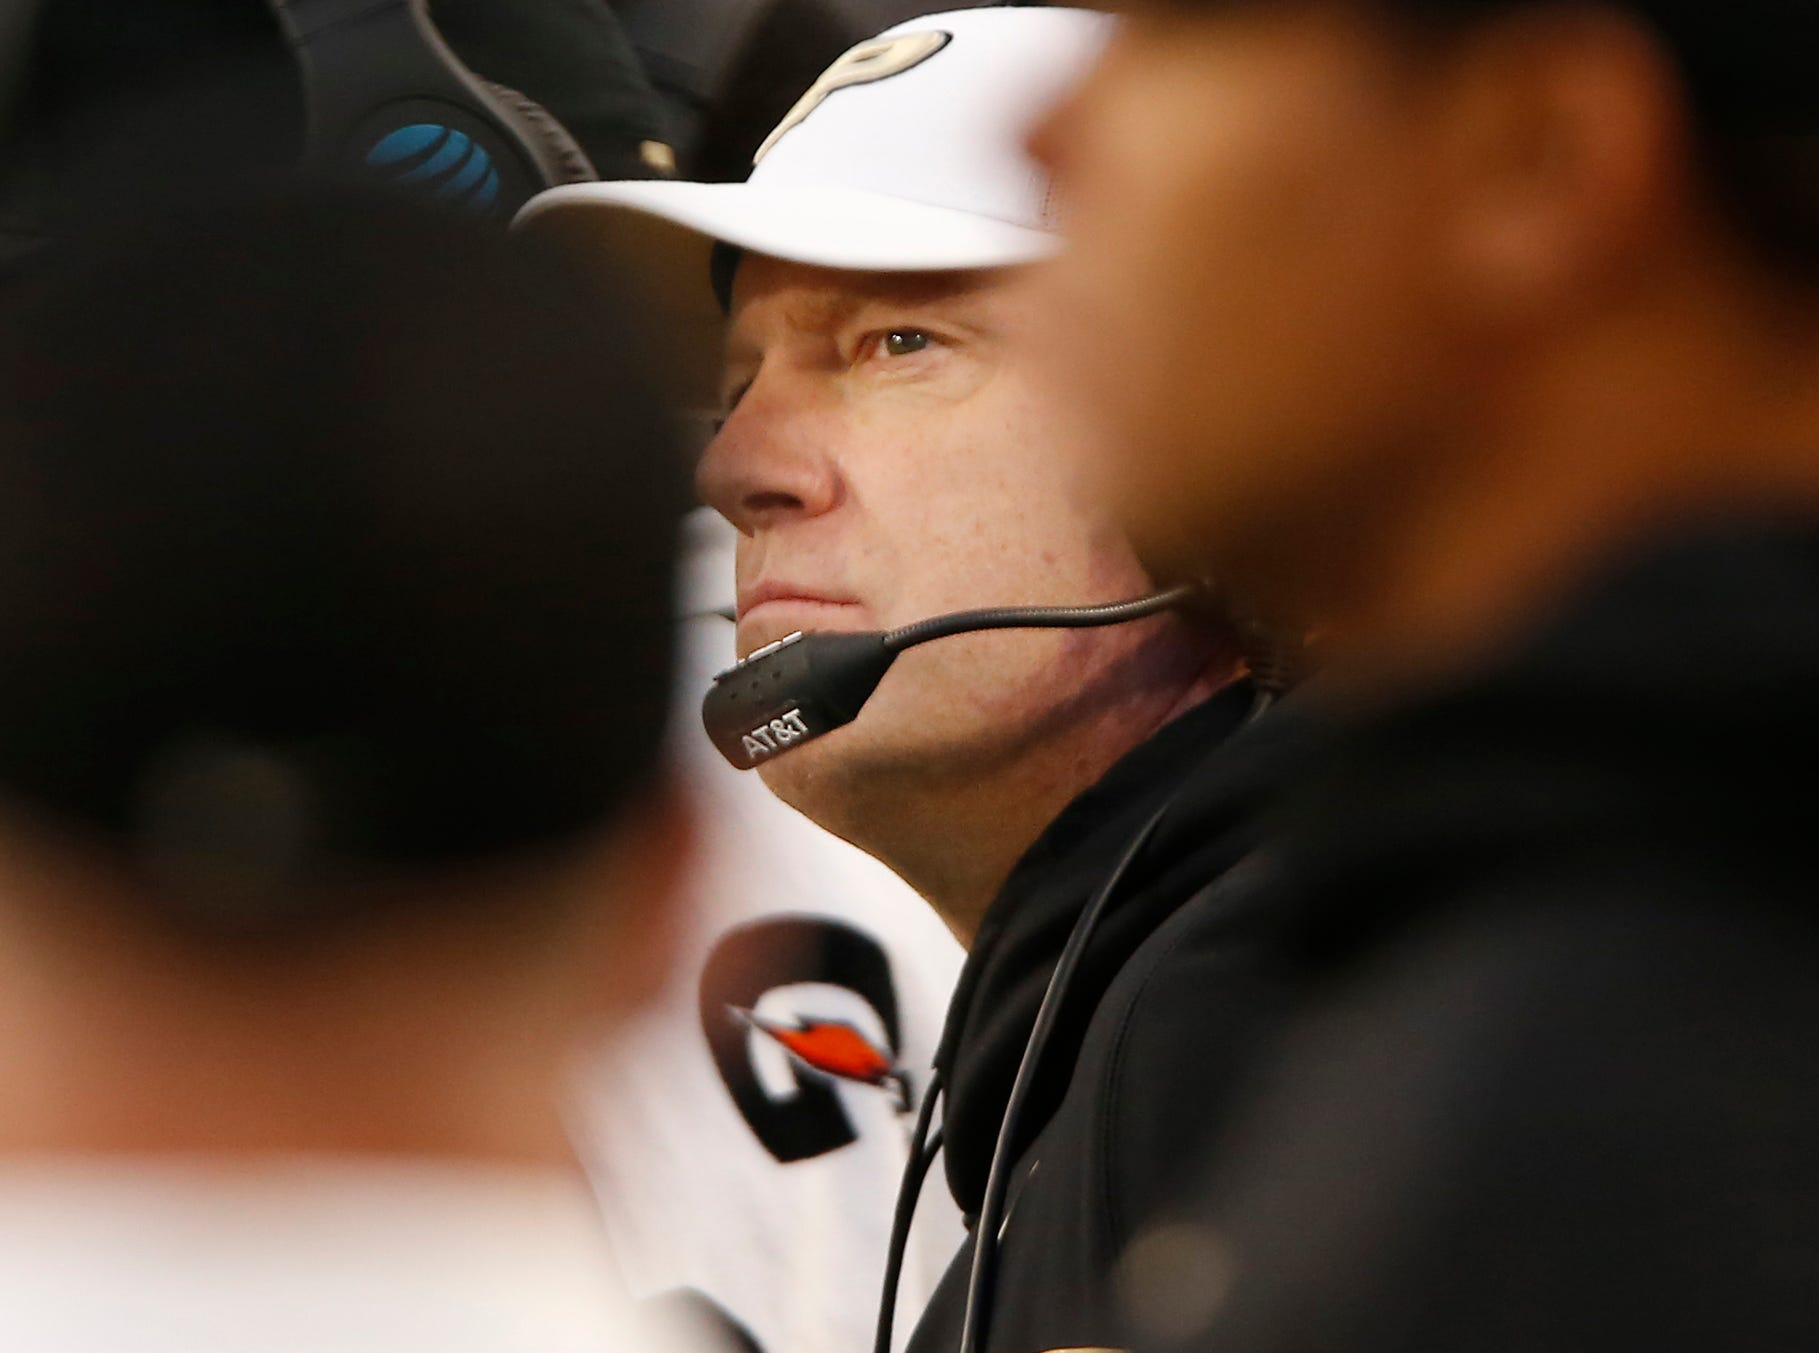 Purdue head coach Jeff Brohm keeps on eye on the clock as the Boilermakers battle Iowa late in regulation Saturday, November 3, 2018, at Ross-Ade Stadium. Purdue defeated Iowa 38-36.